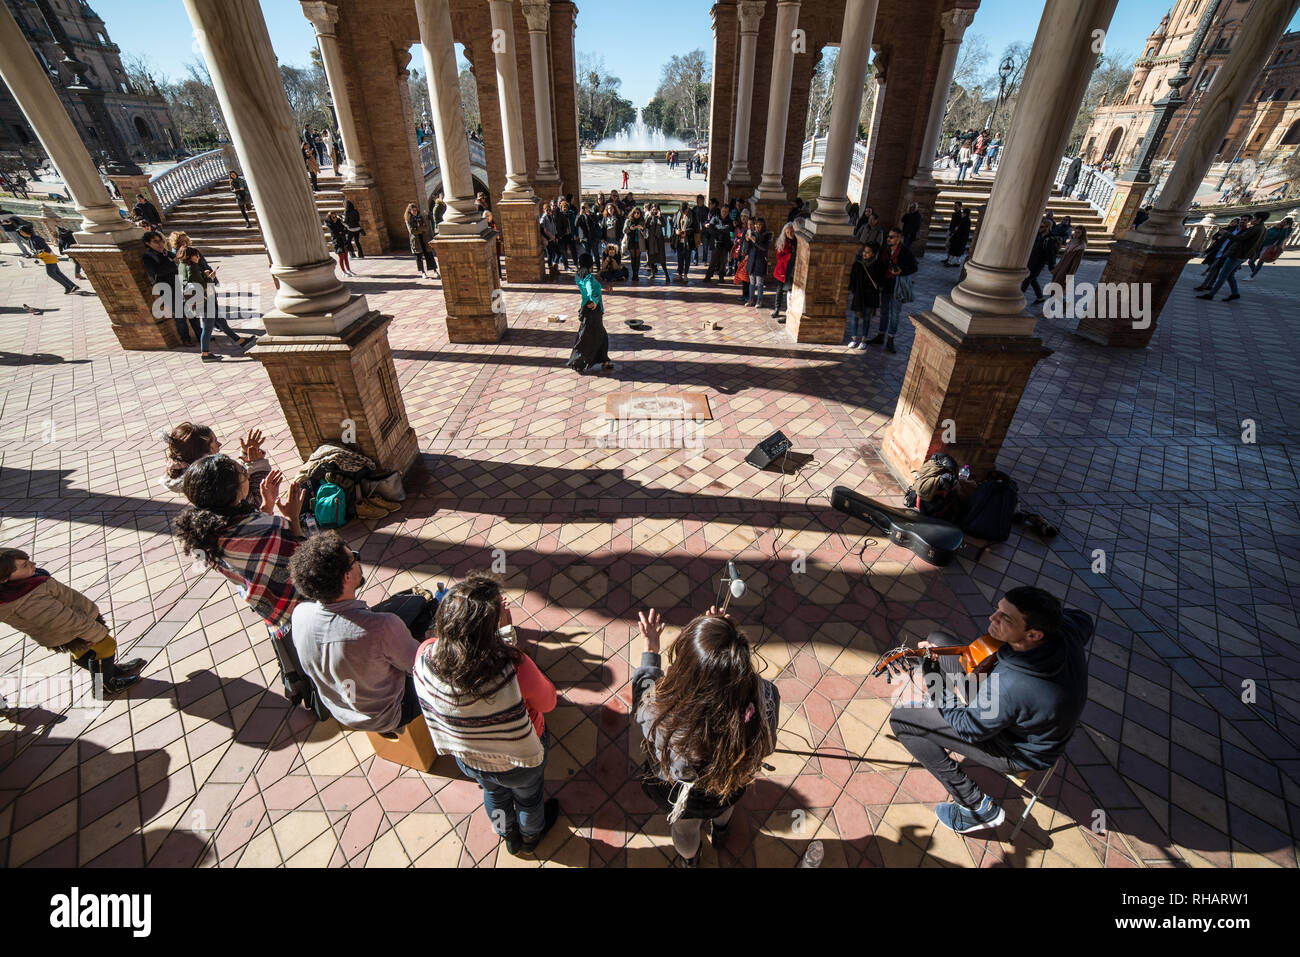 Flamenco in Plaza de Espana, Sevilla, Andalucia, February 2019 - Stock Image